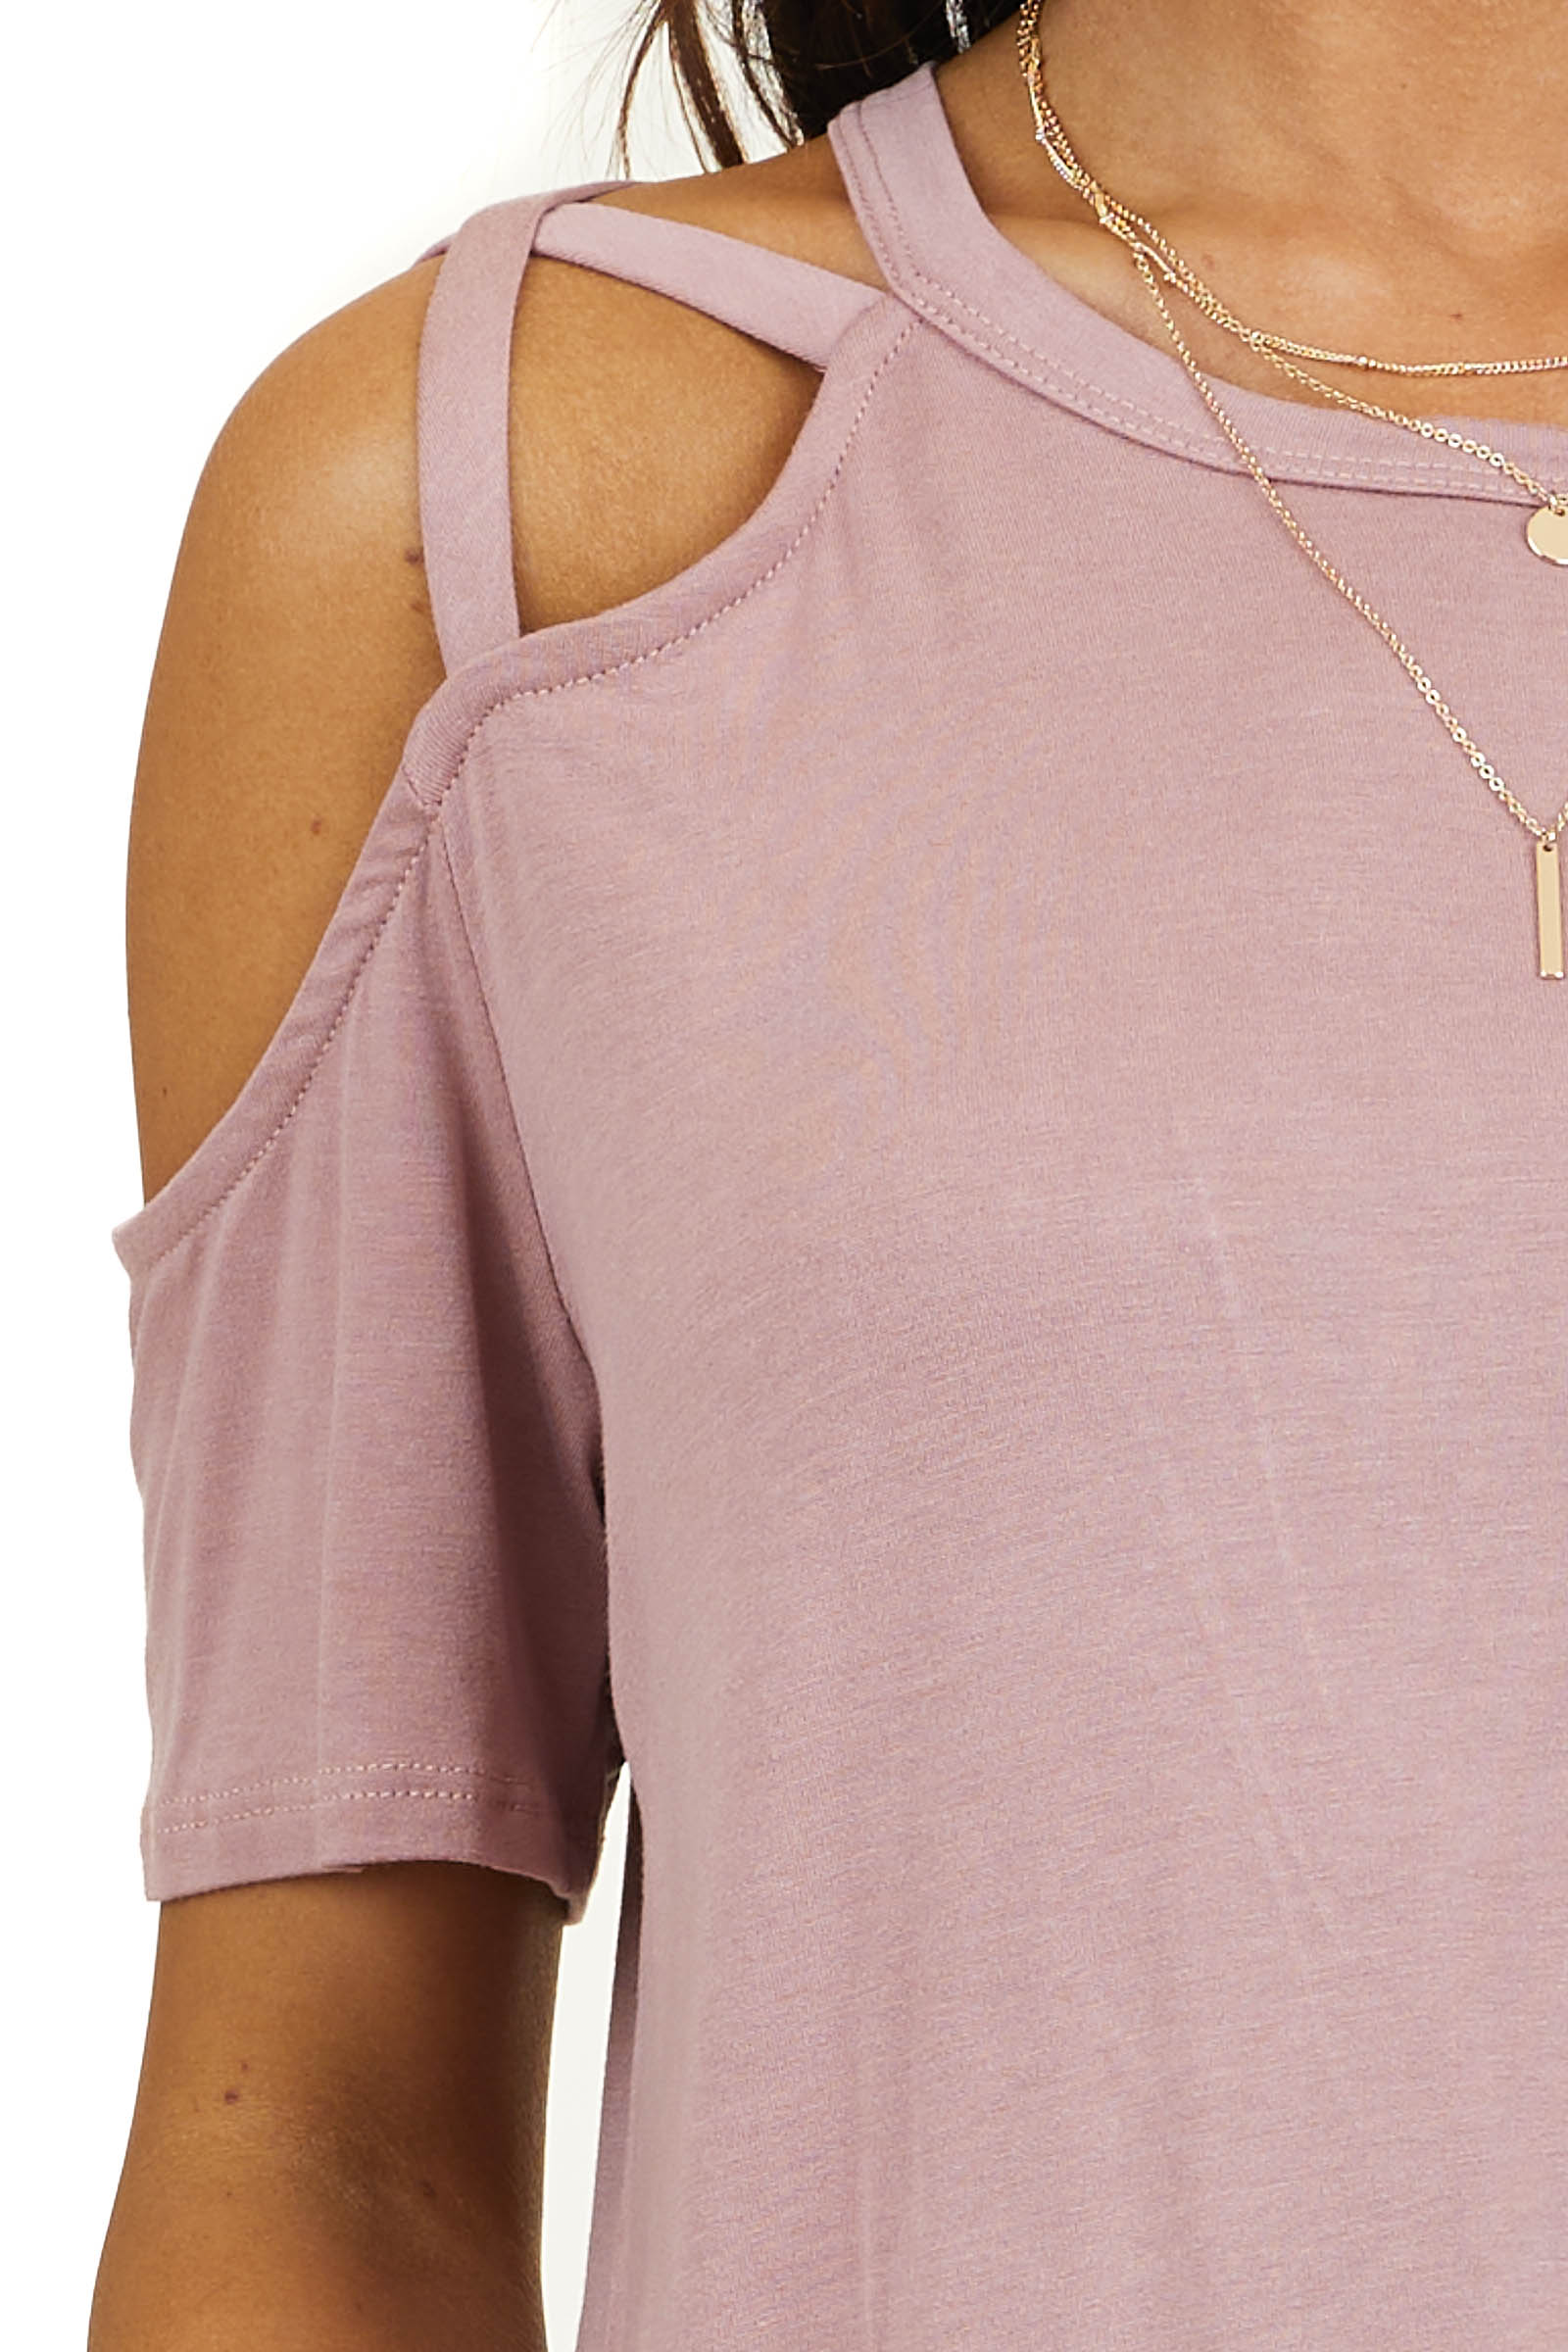 Sienna Strappy Cold Shoulder Short Sleeve Knit Top